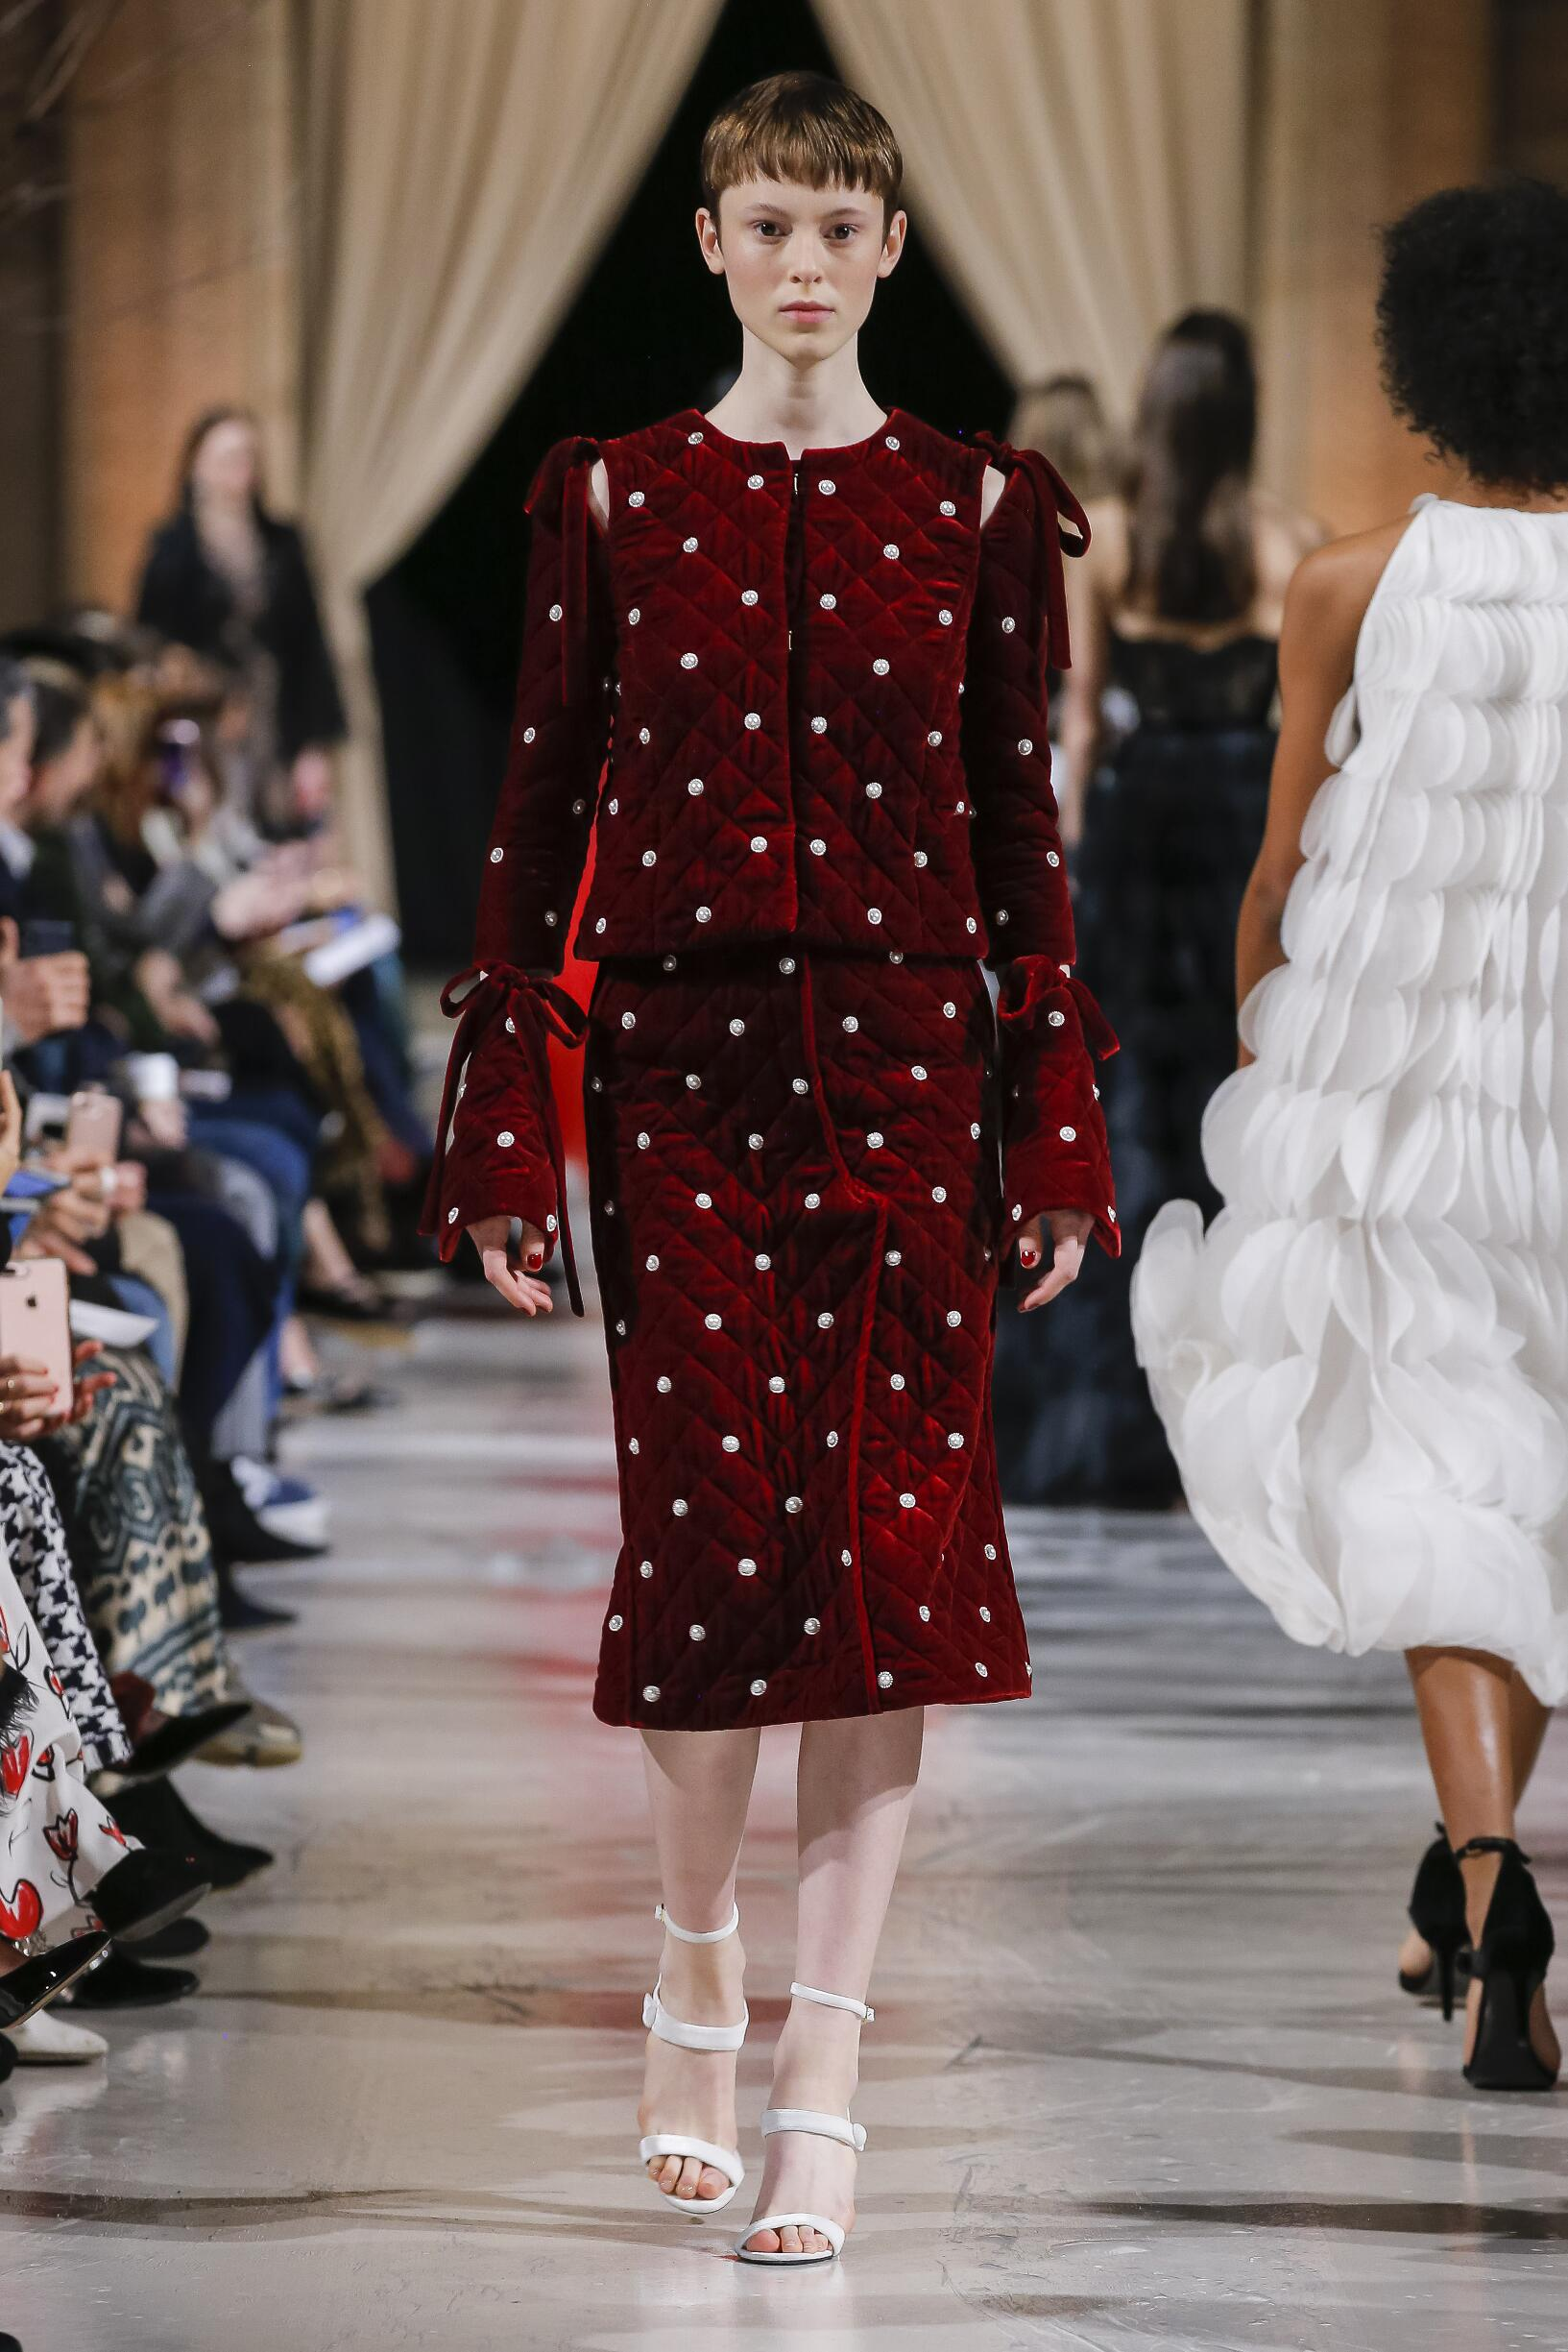 2018 Oscar de la Renta Woman Winter Catwalk